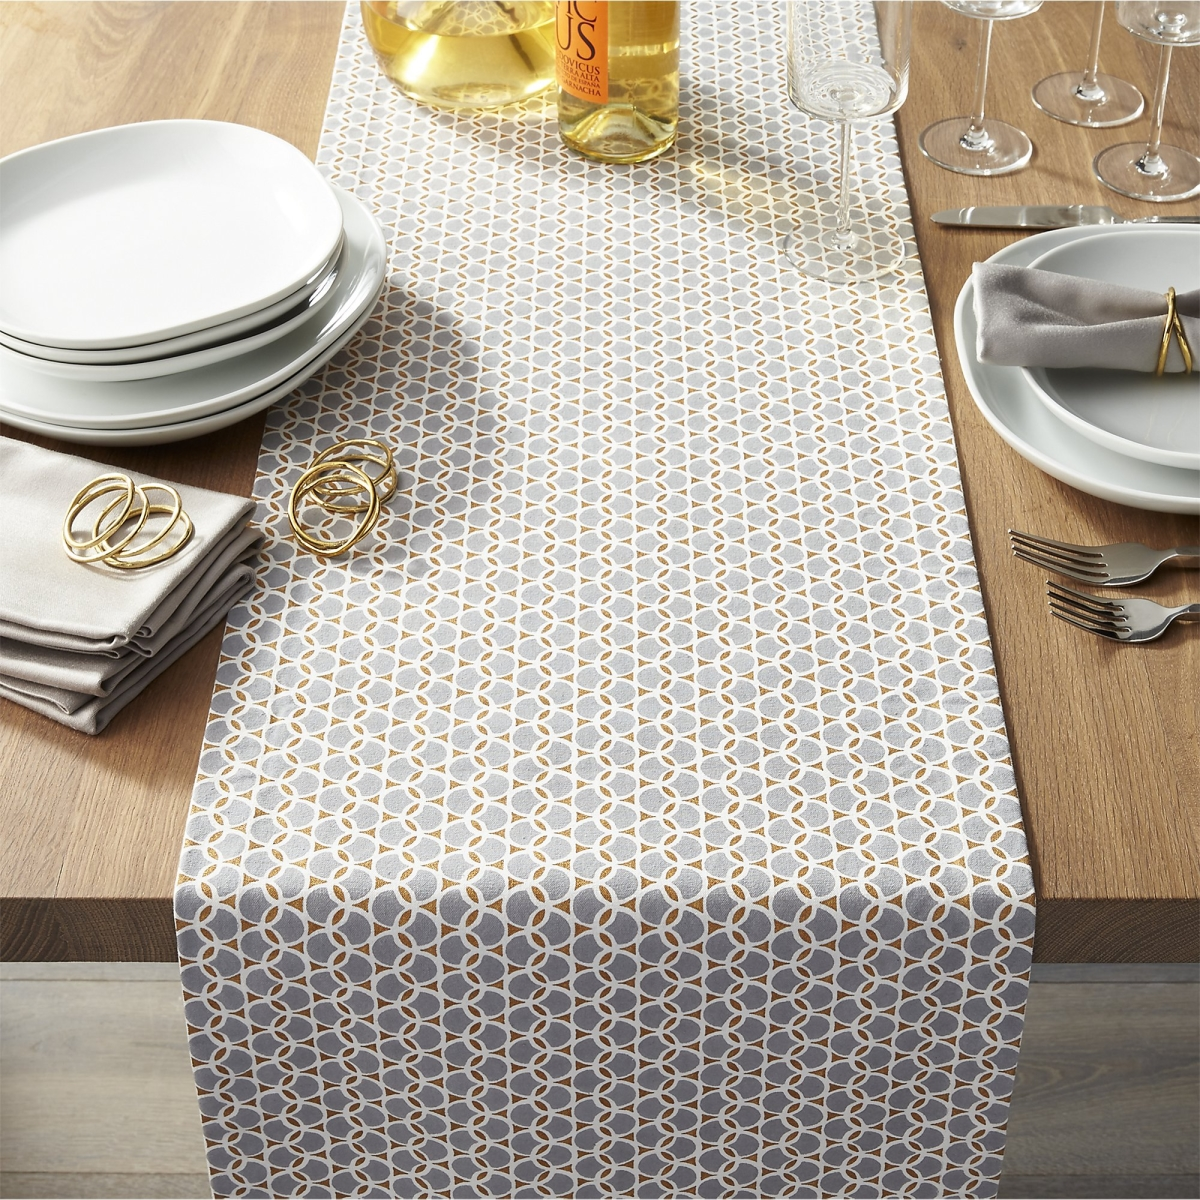 table runner The Finest Table Runners for your Dining Table Geometric table runner from Crate Barrel